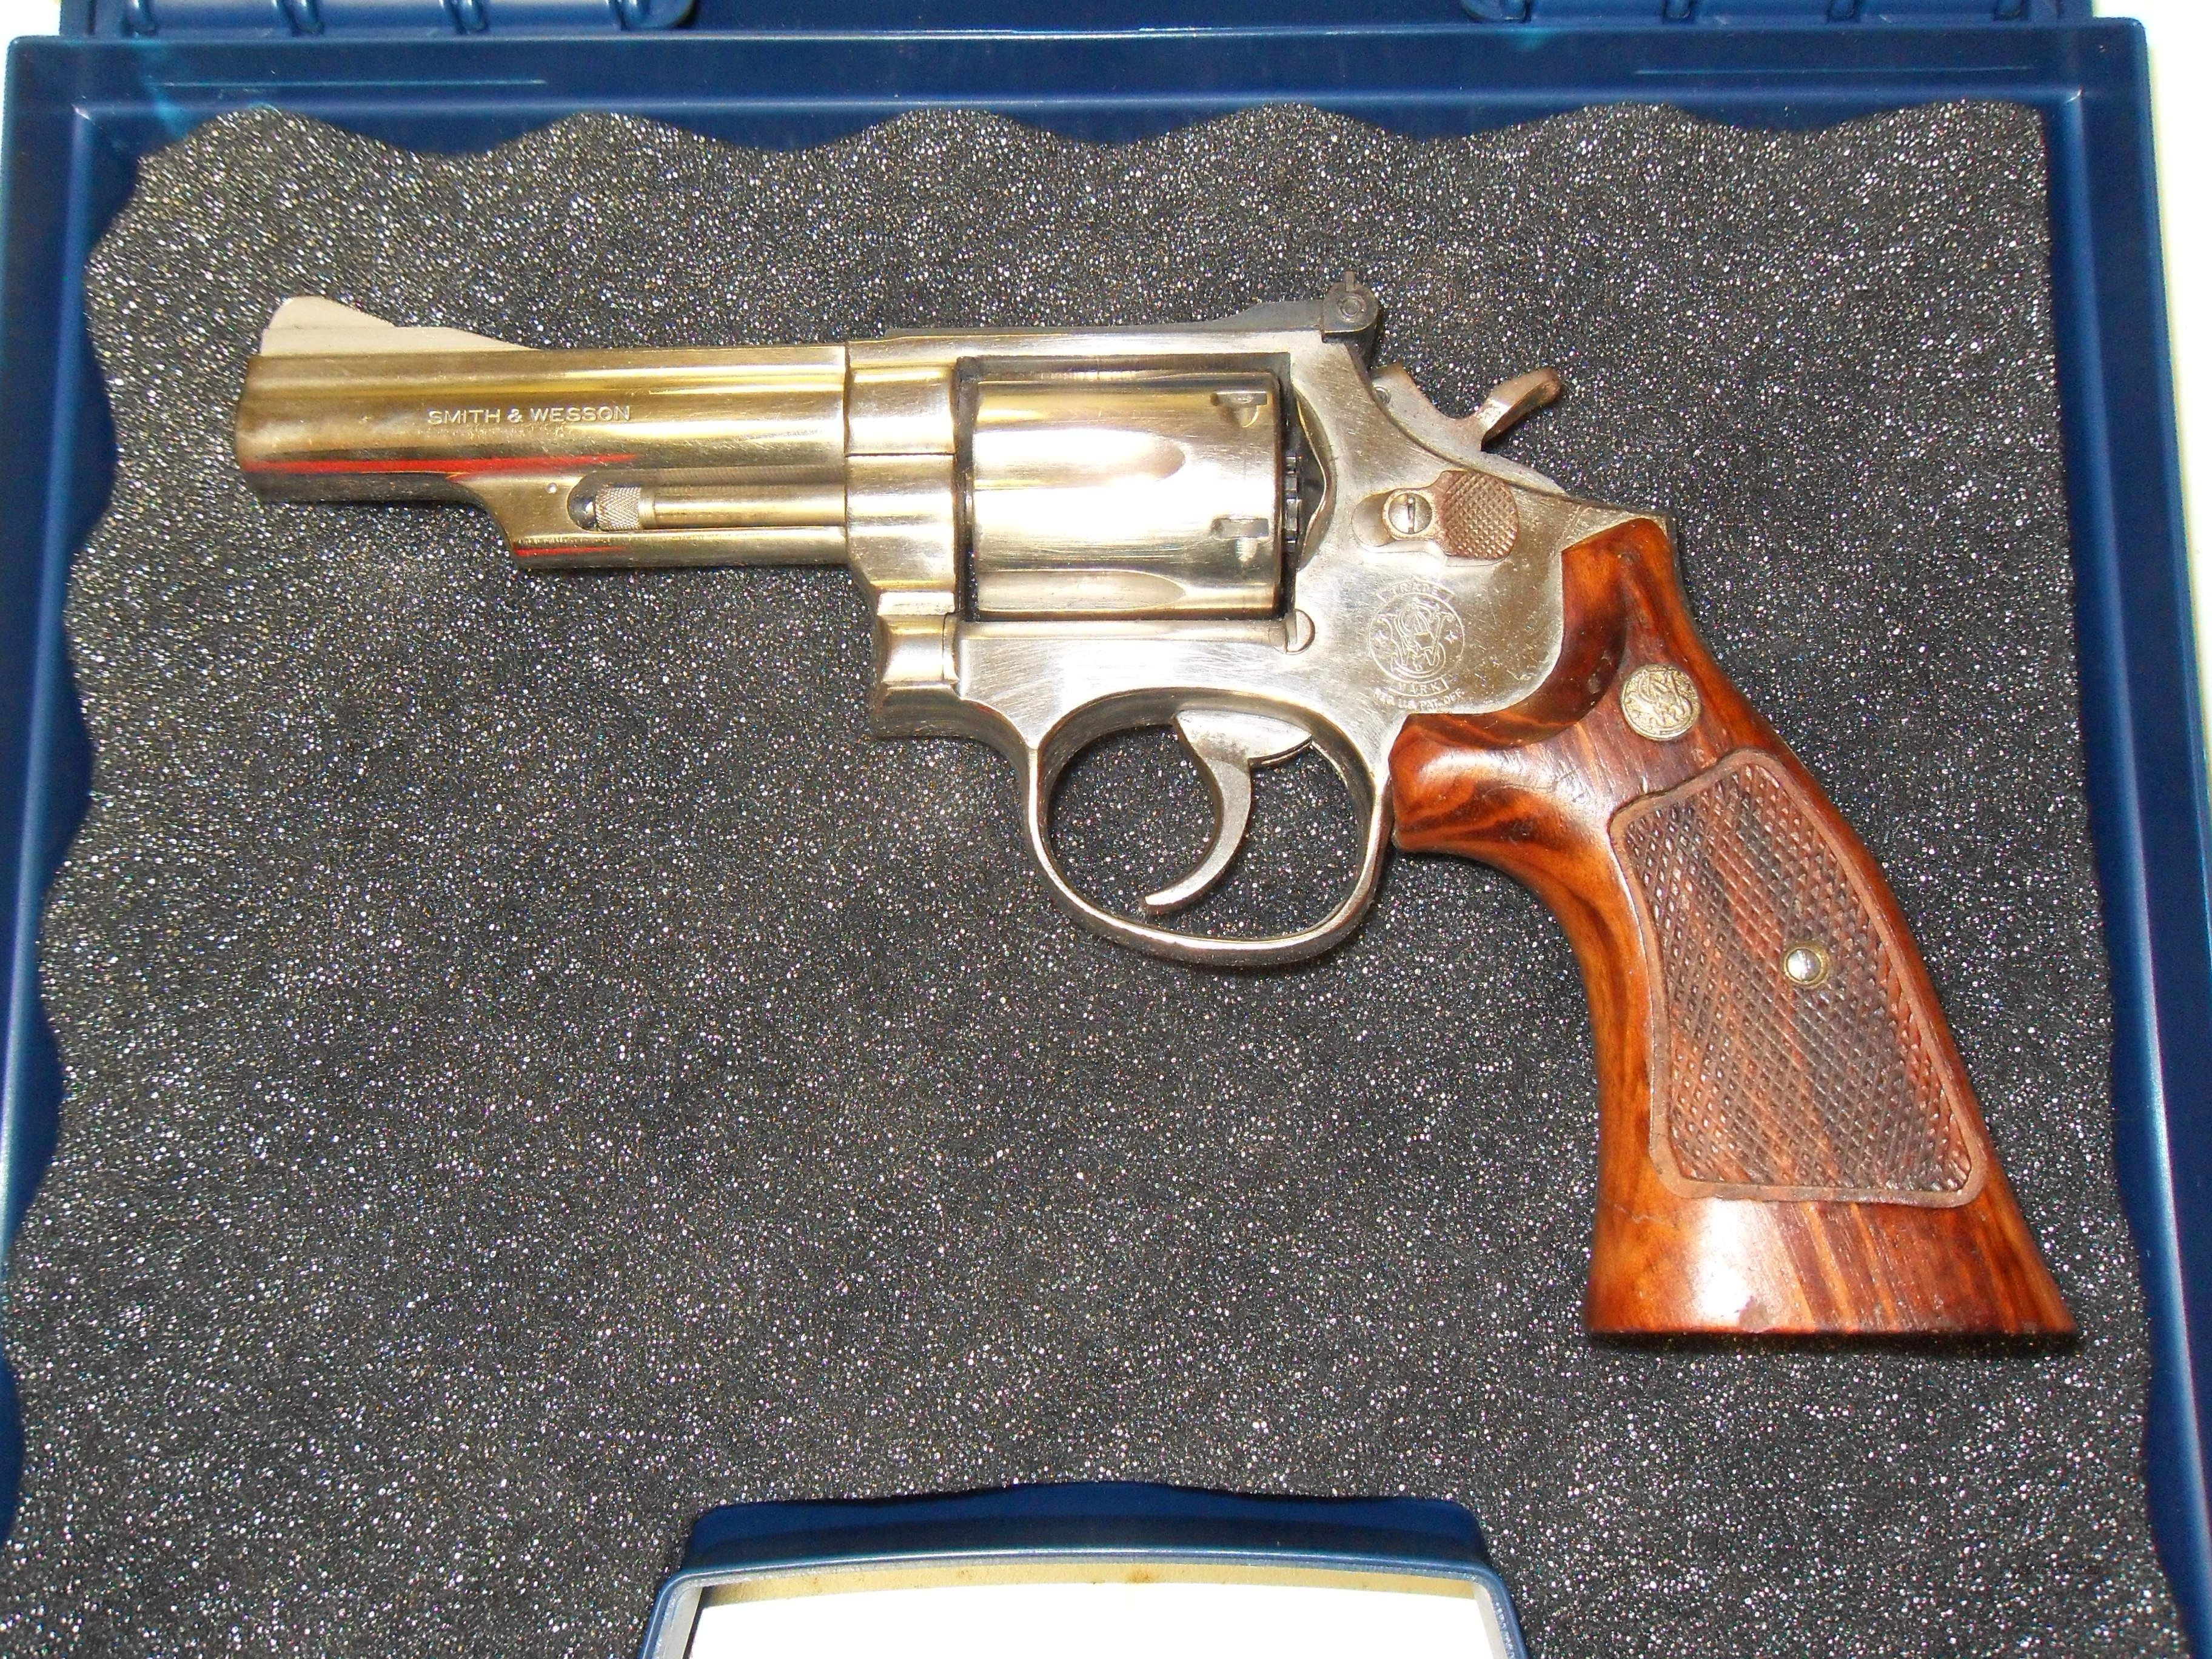 Smith & Wesson 19-5 Nickle  Guns > Pistols > Smith & Wesson Revolvers > Full Frame Revolver